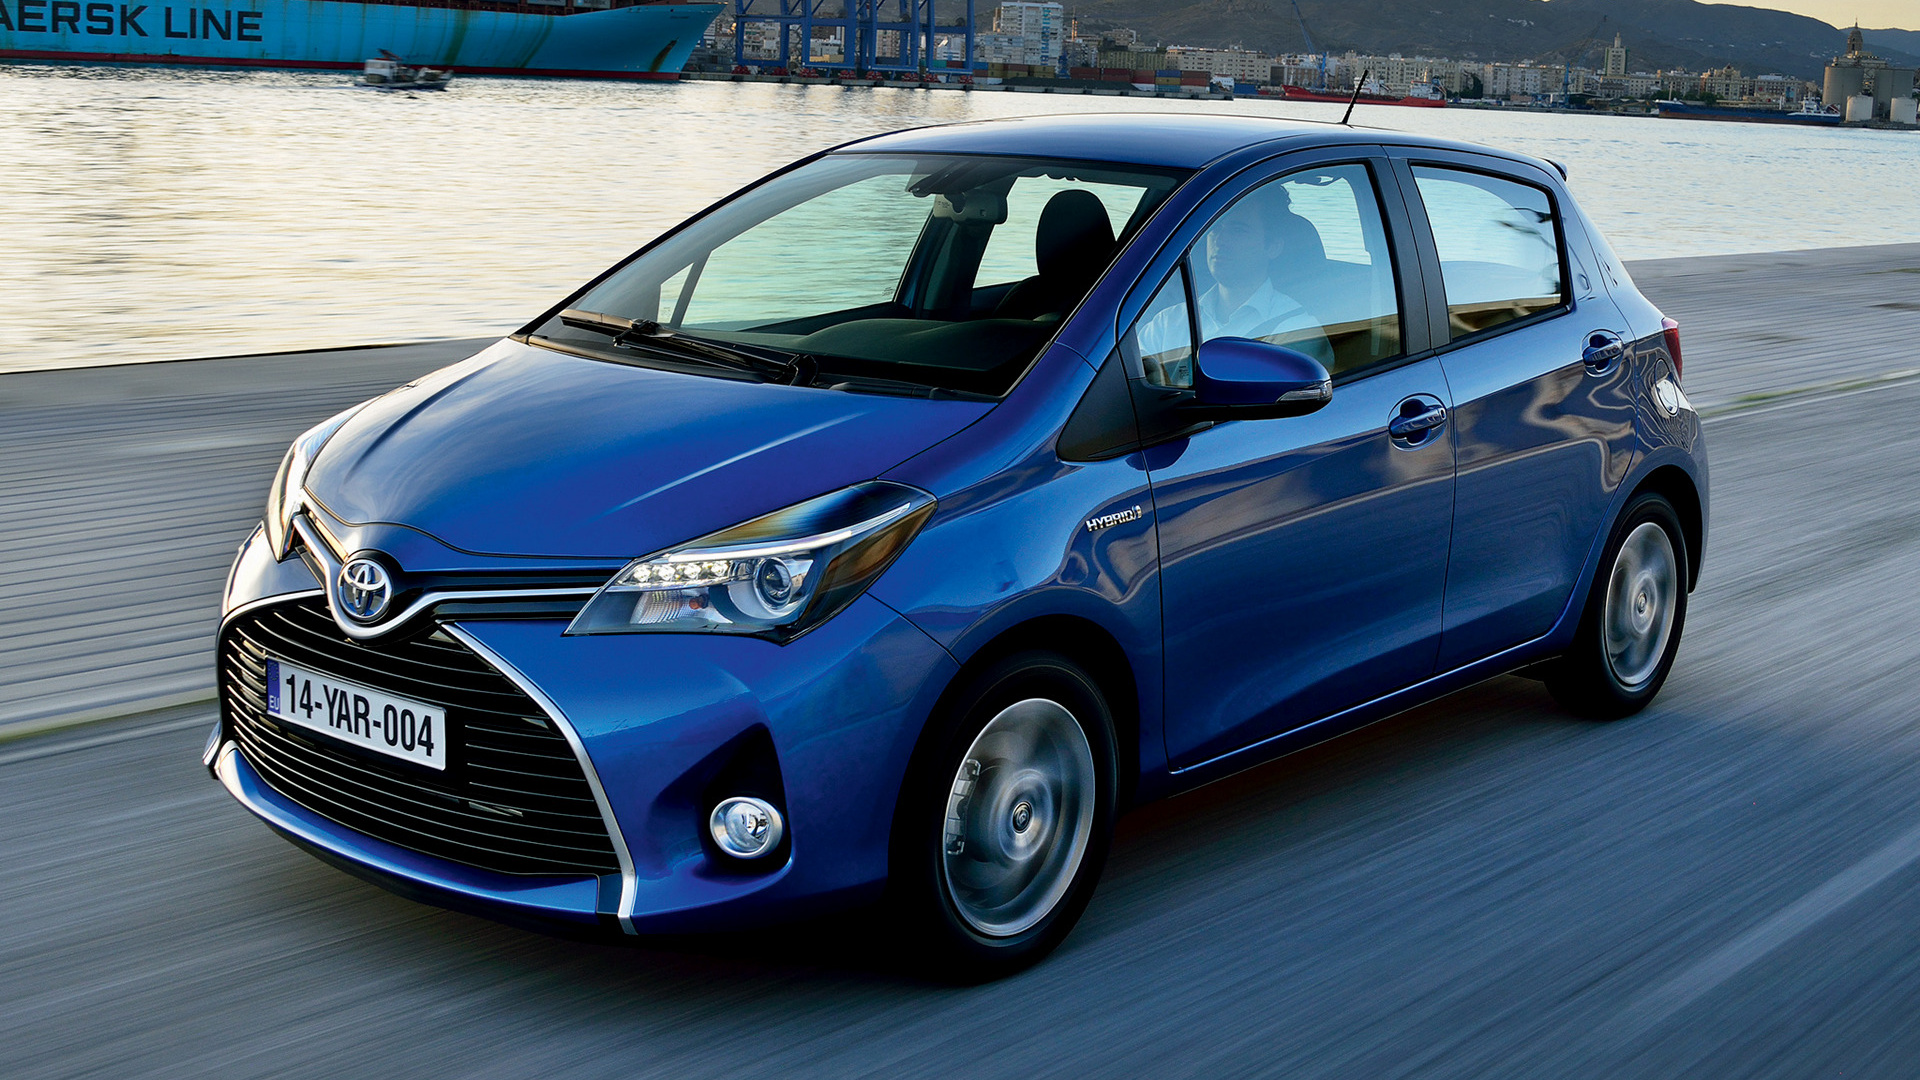 toyota yaris hybrid 2014 wallpapers and hd images car pixel. Black Bedroom Furniture Sets. Home Design Ideas